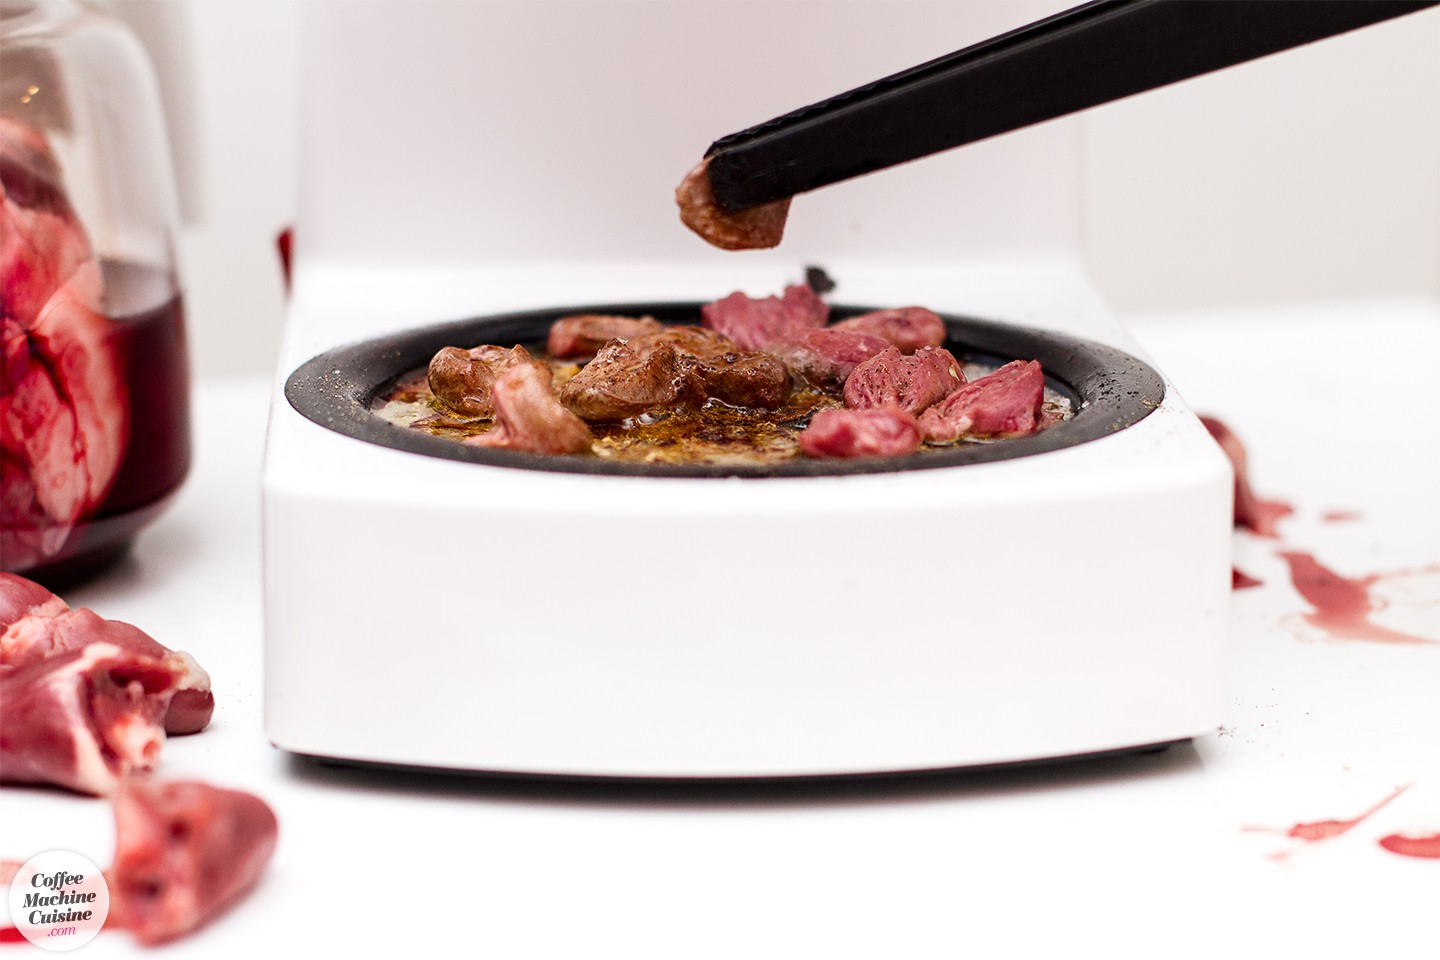 Howo to cook food with your coffee maker